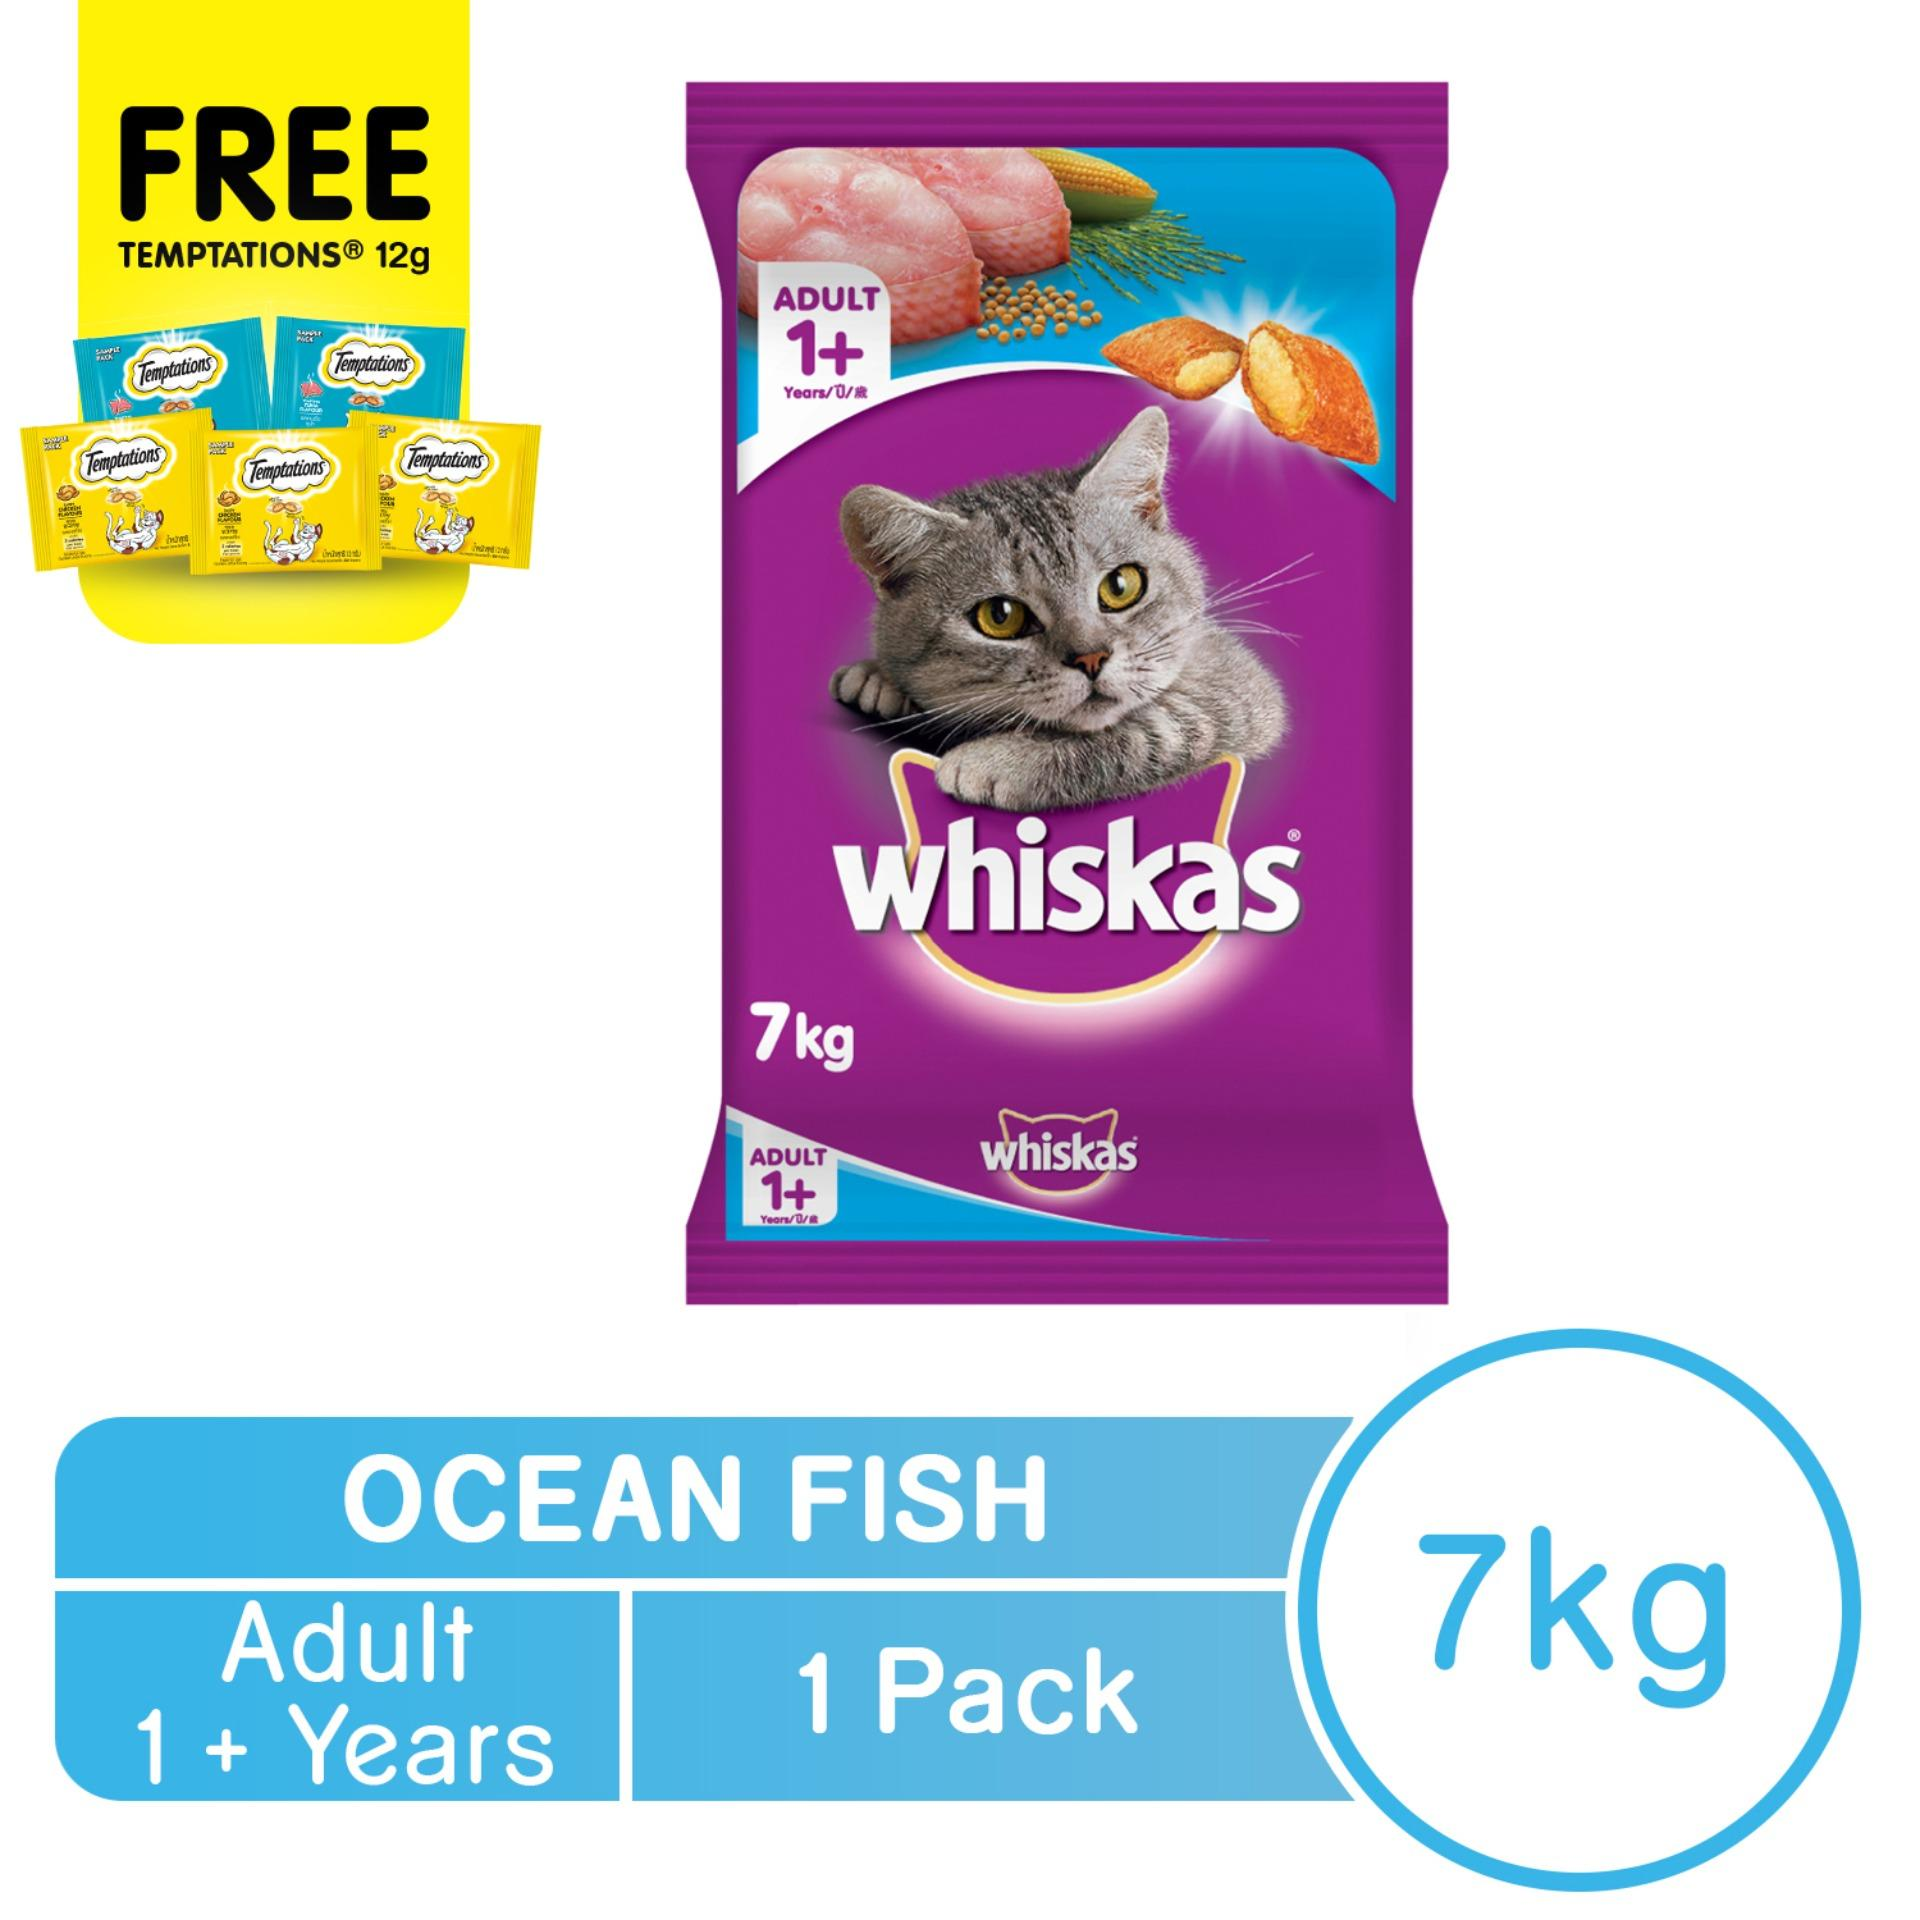 Cat Dry Food for sale - Food for Cats online brands, prices